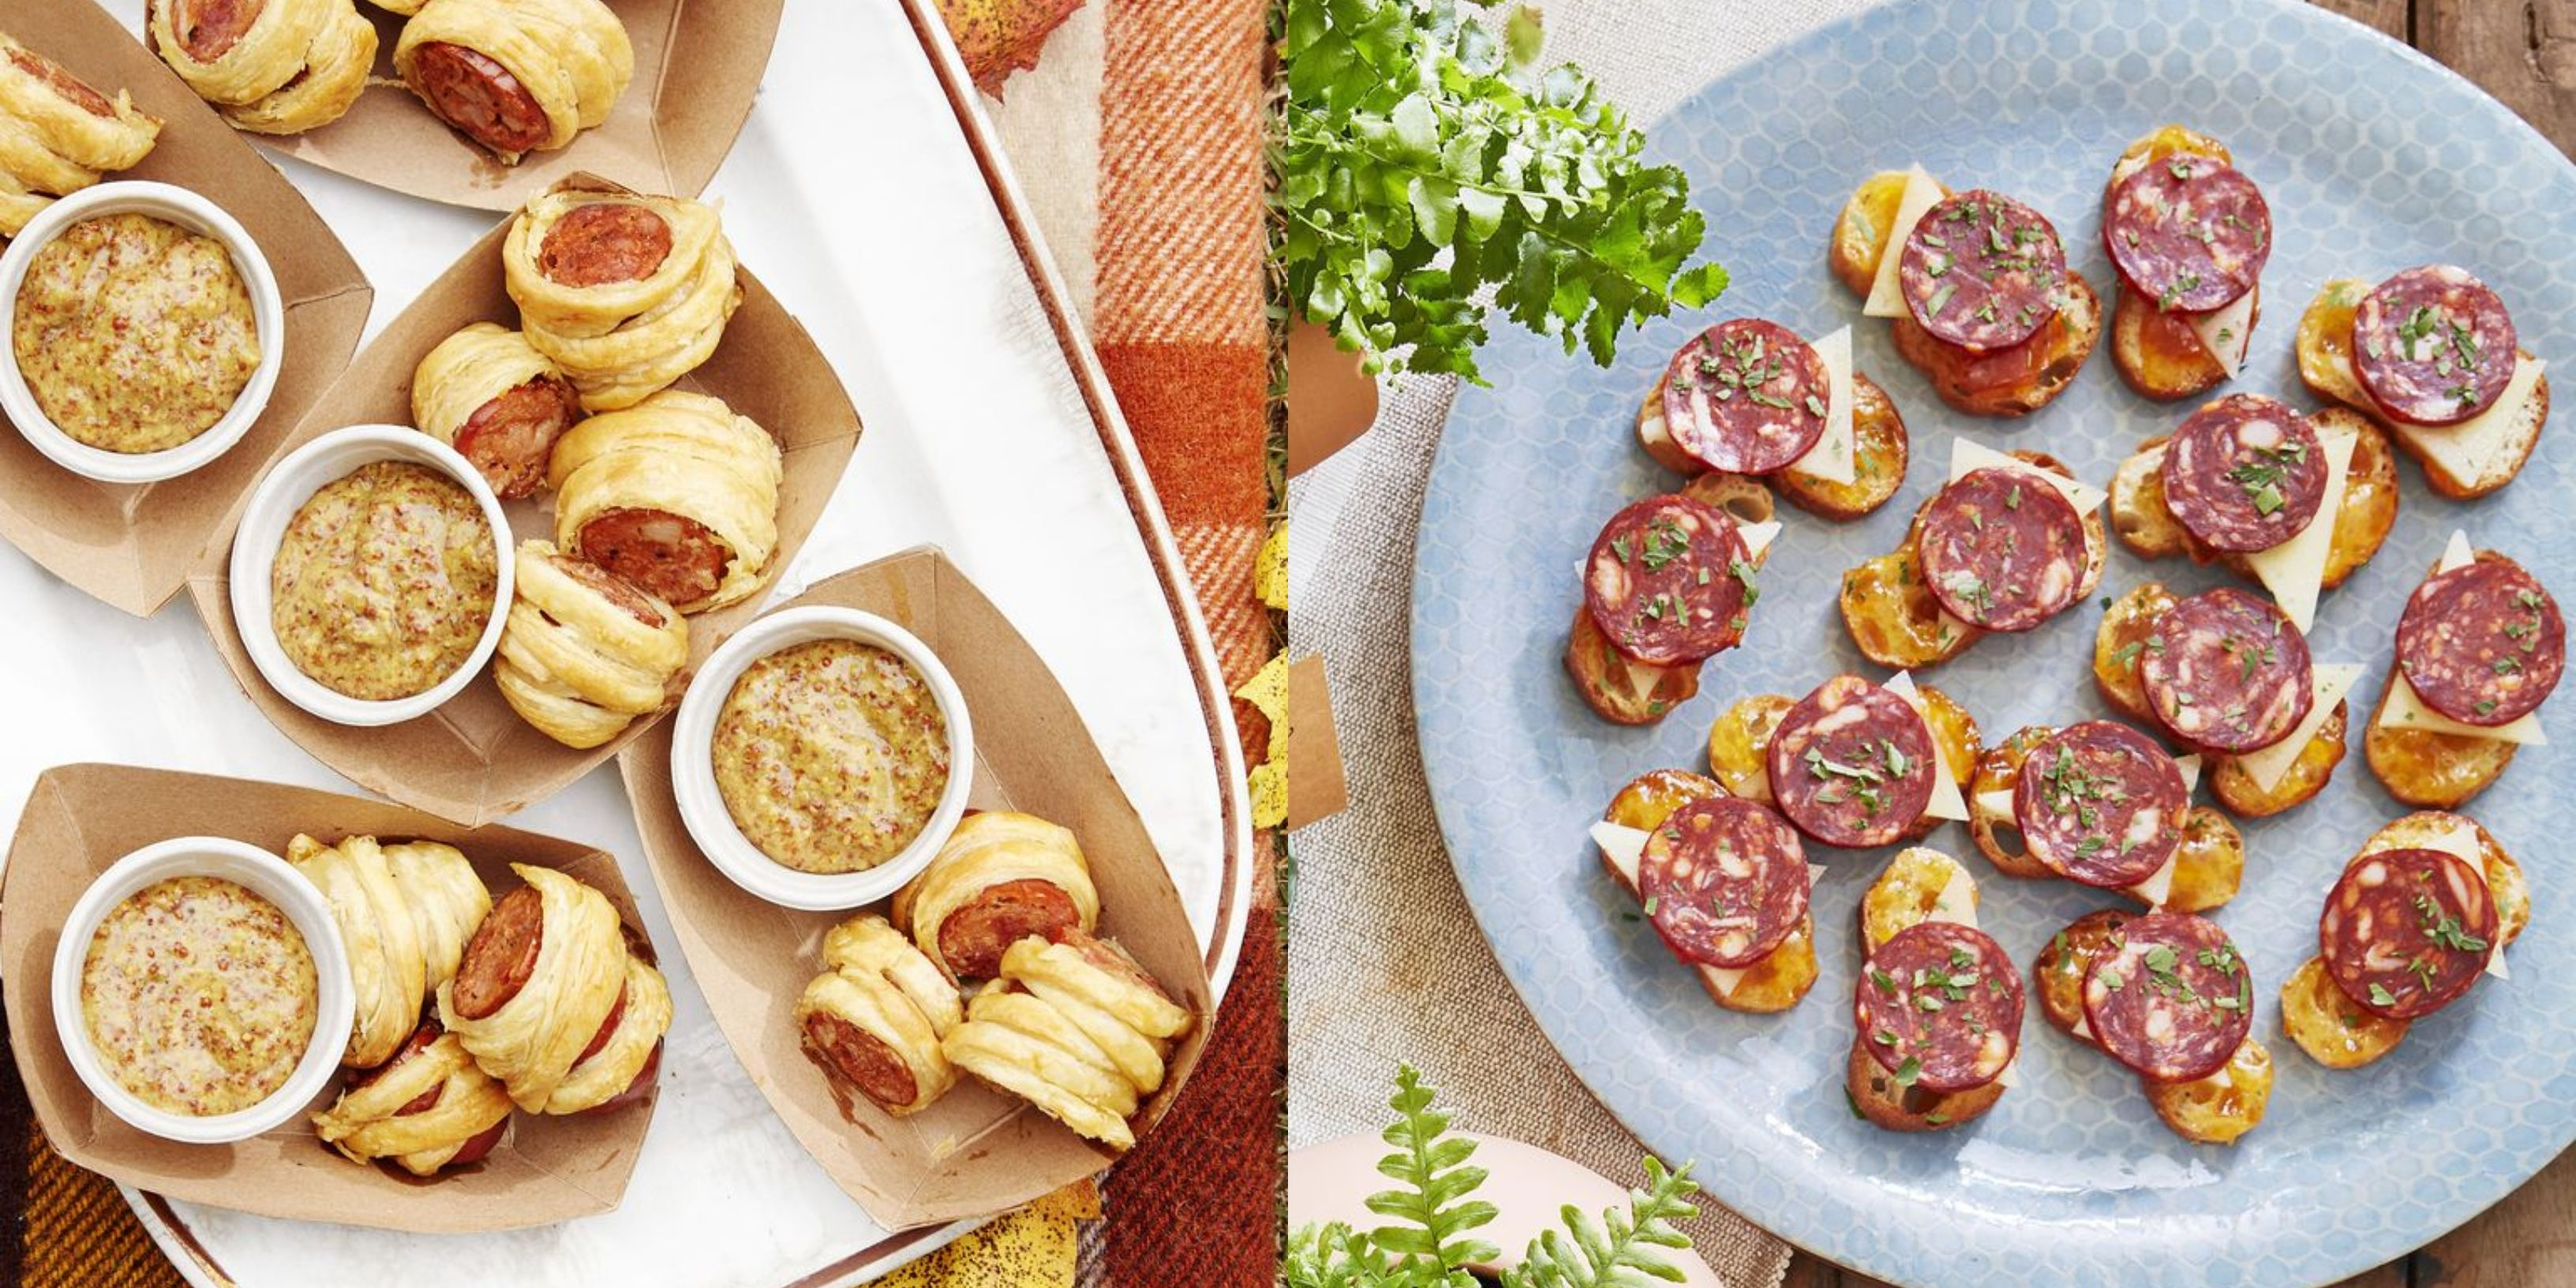 45 Fall Appetizers to Make for Any Occasion